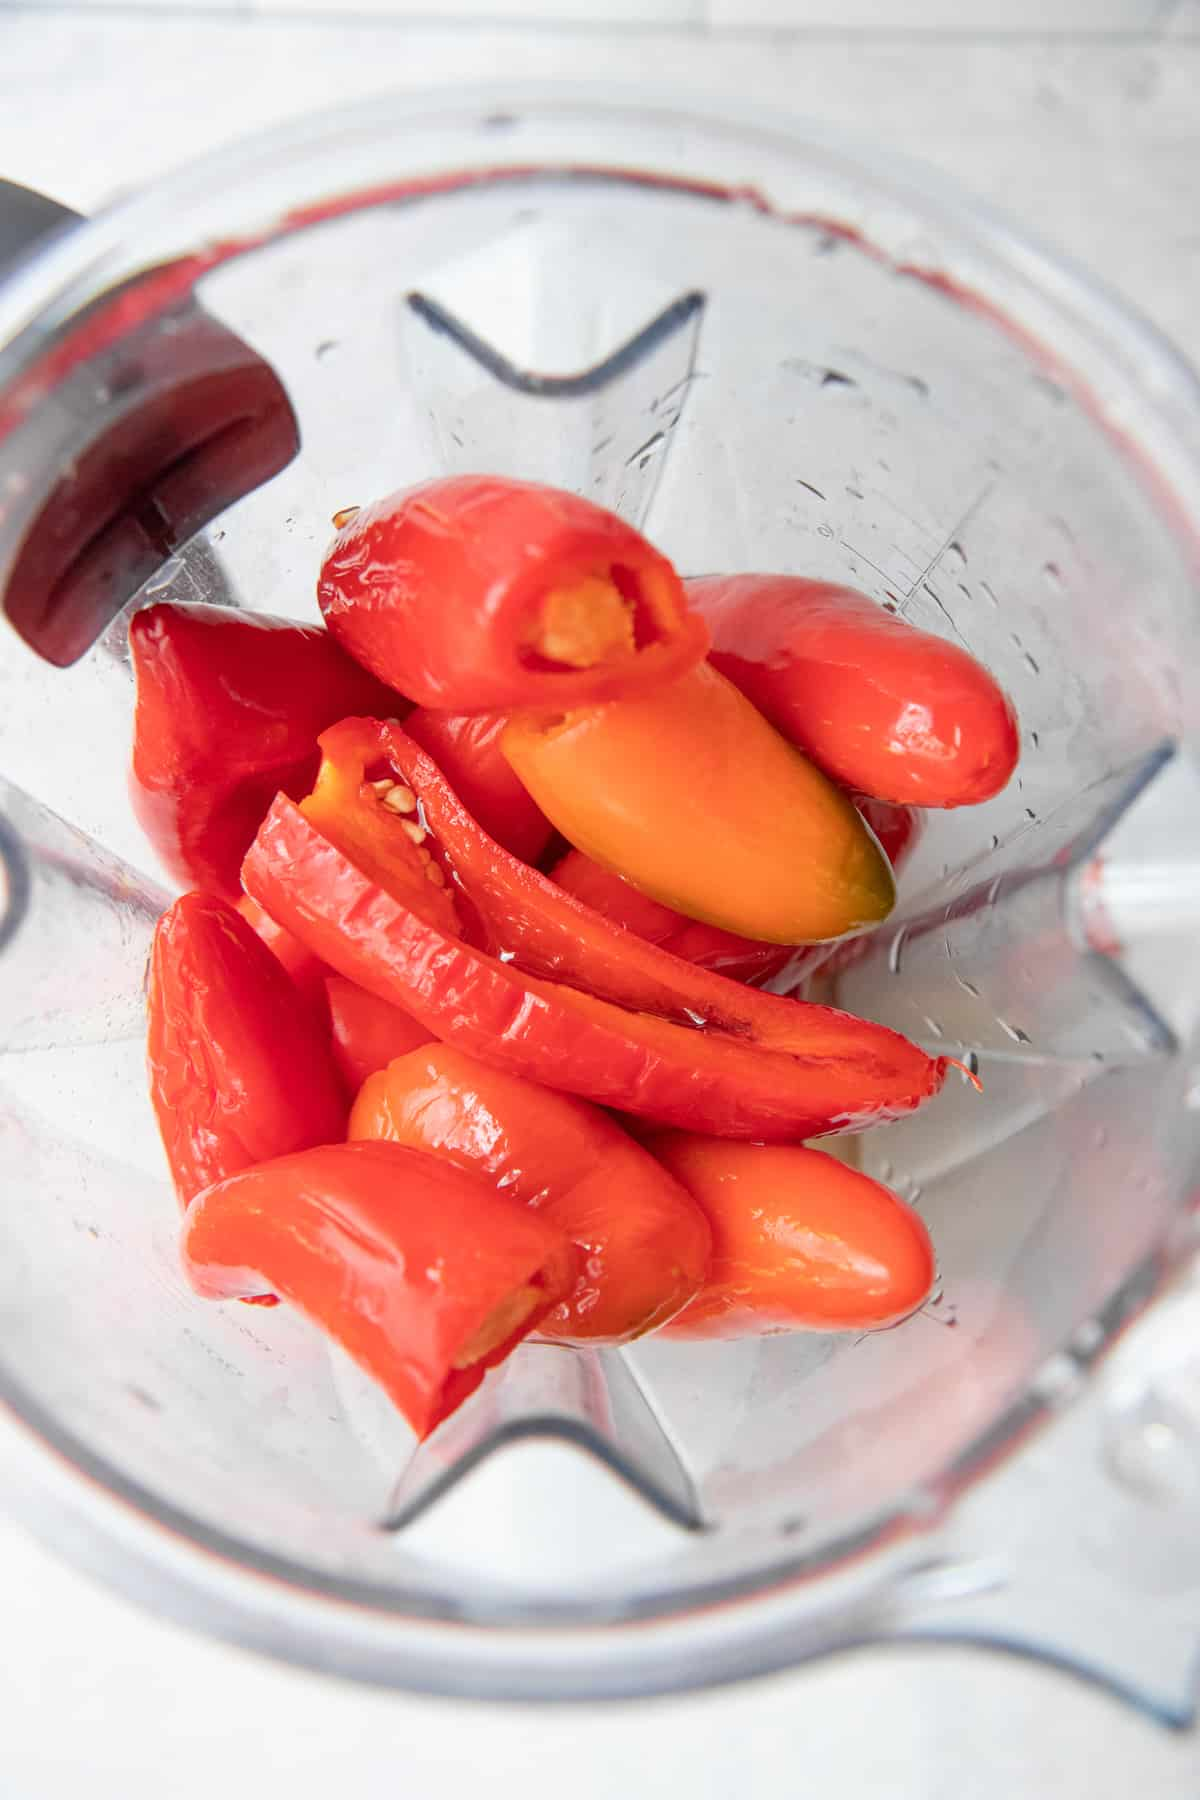 Fermented red peppers in the basin of a blender.